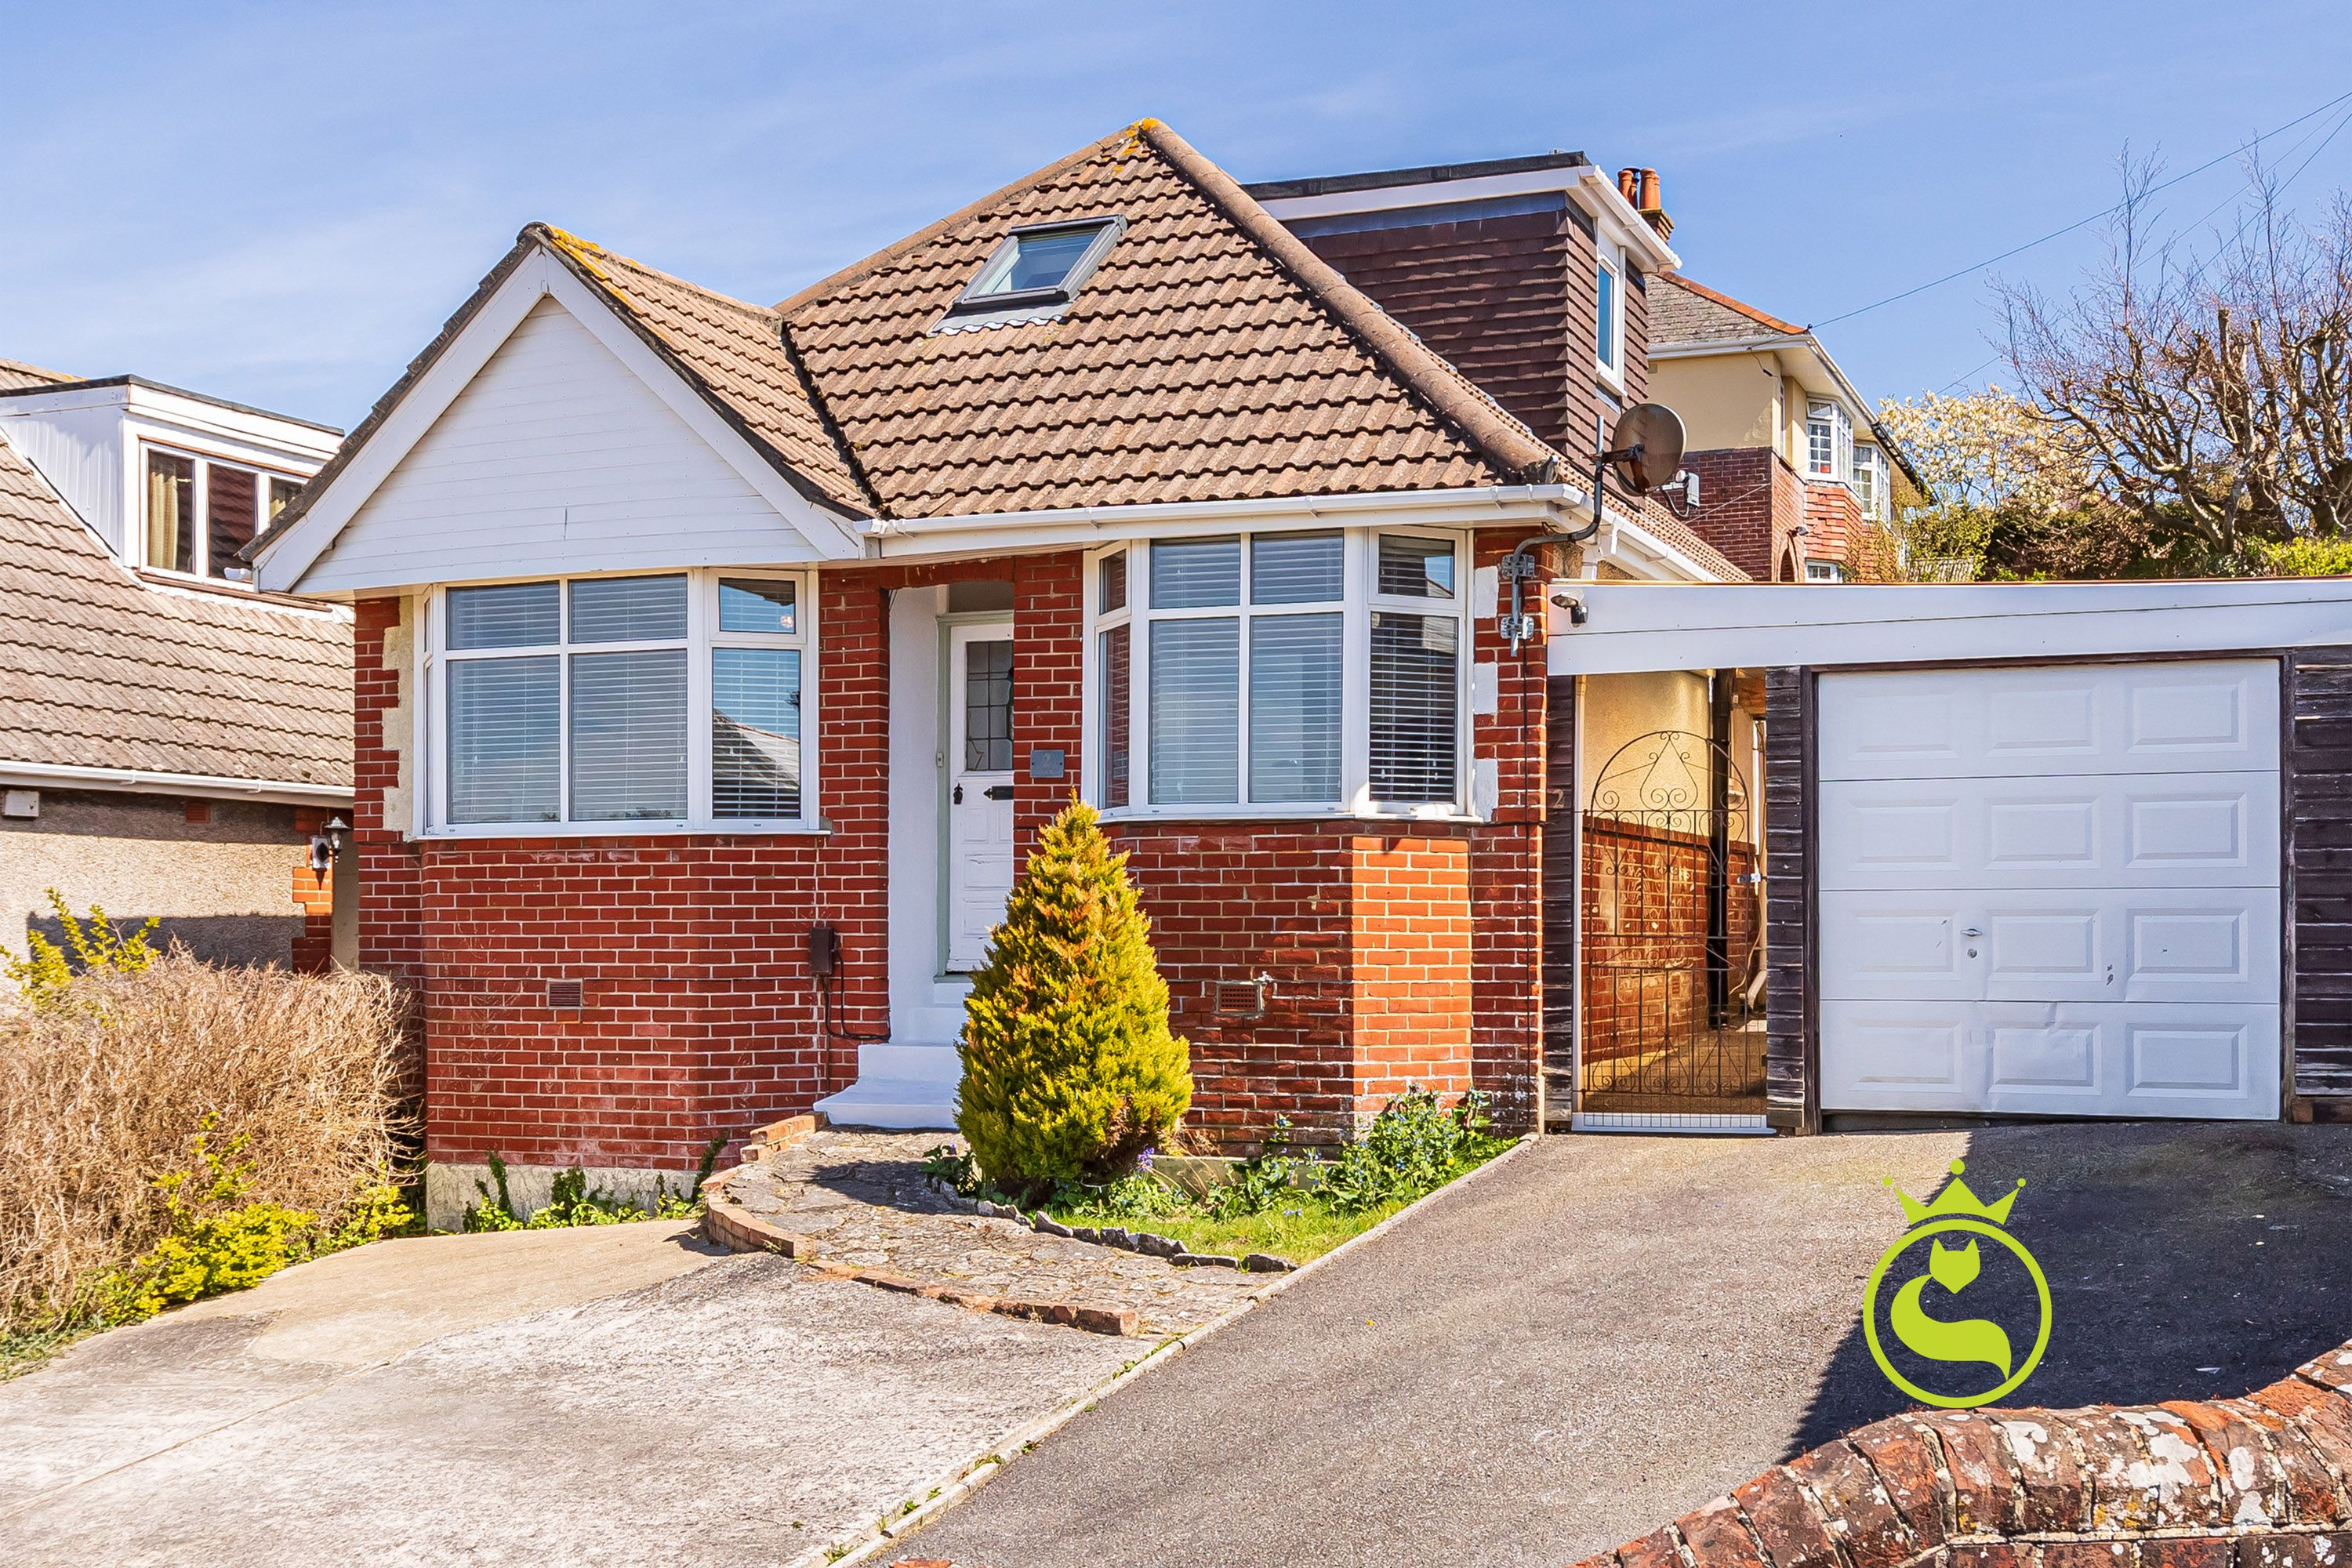 You will fall in love with this beautifullly presented modernised four bedroom, two bathroom detached chalet bungalow. Situated in a popular location close to local schools & amenities.